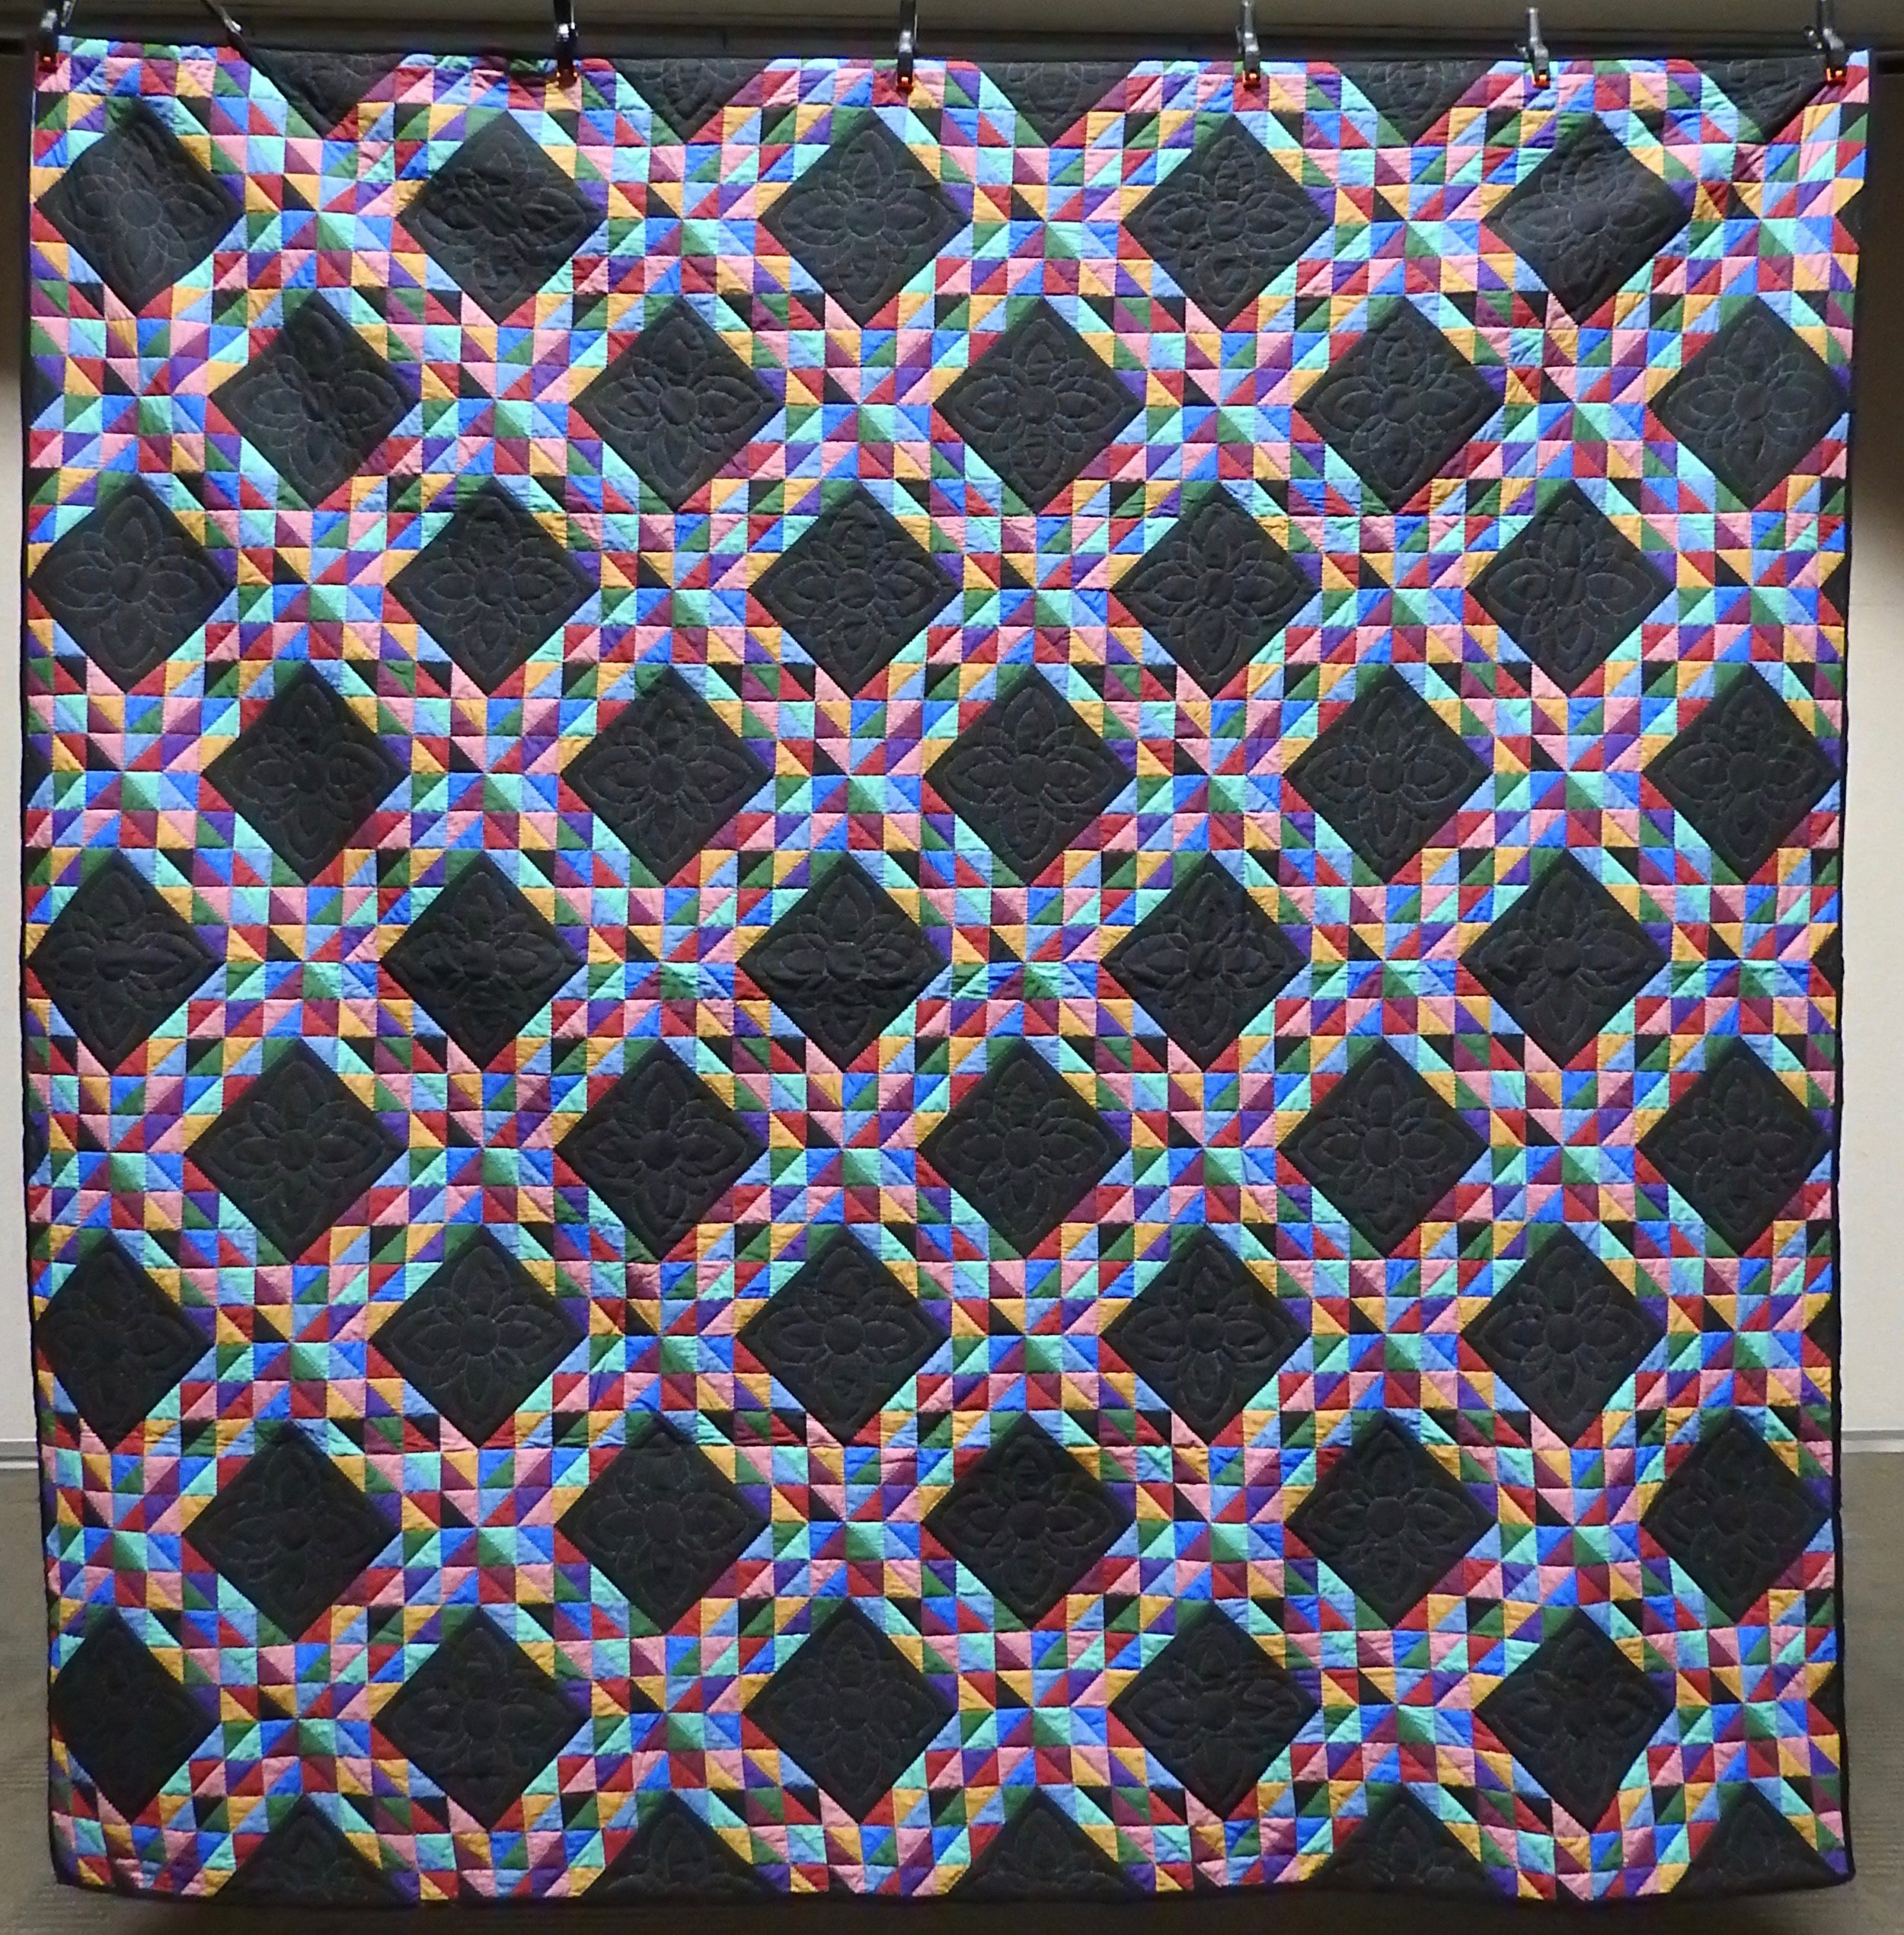 Amish Triangles, Pre-printed fabric, Single Needle Hand Quilted, Clinton Frame Church, 87 x 87""